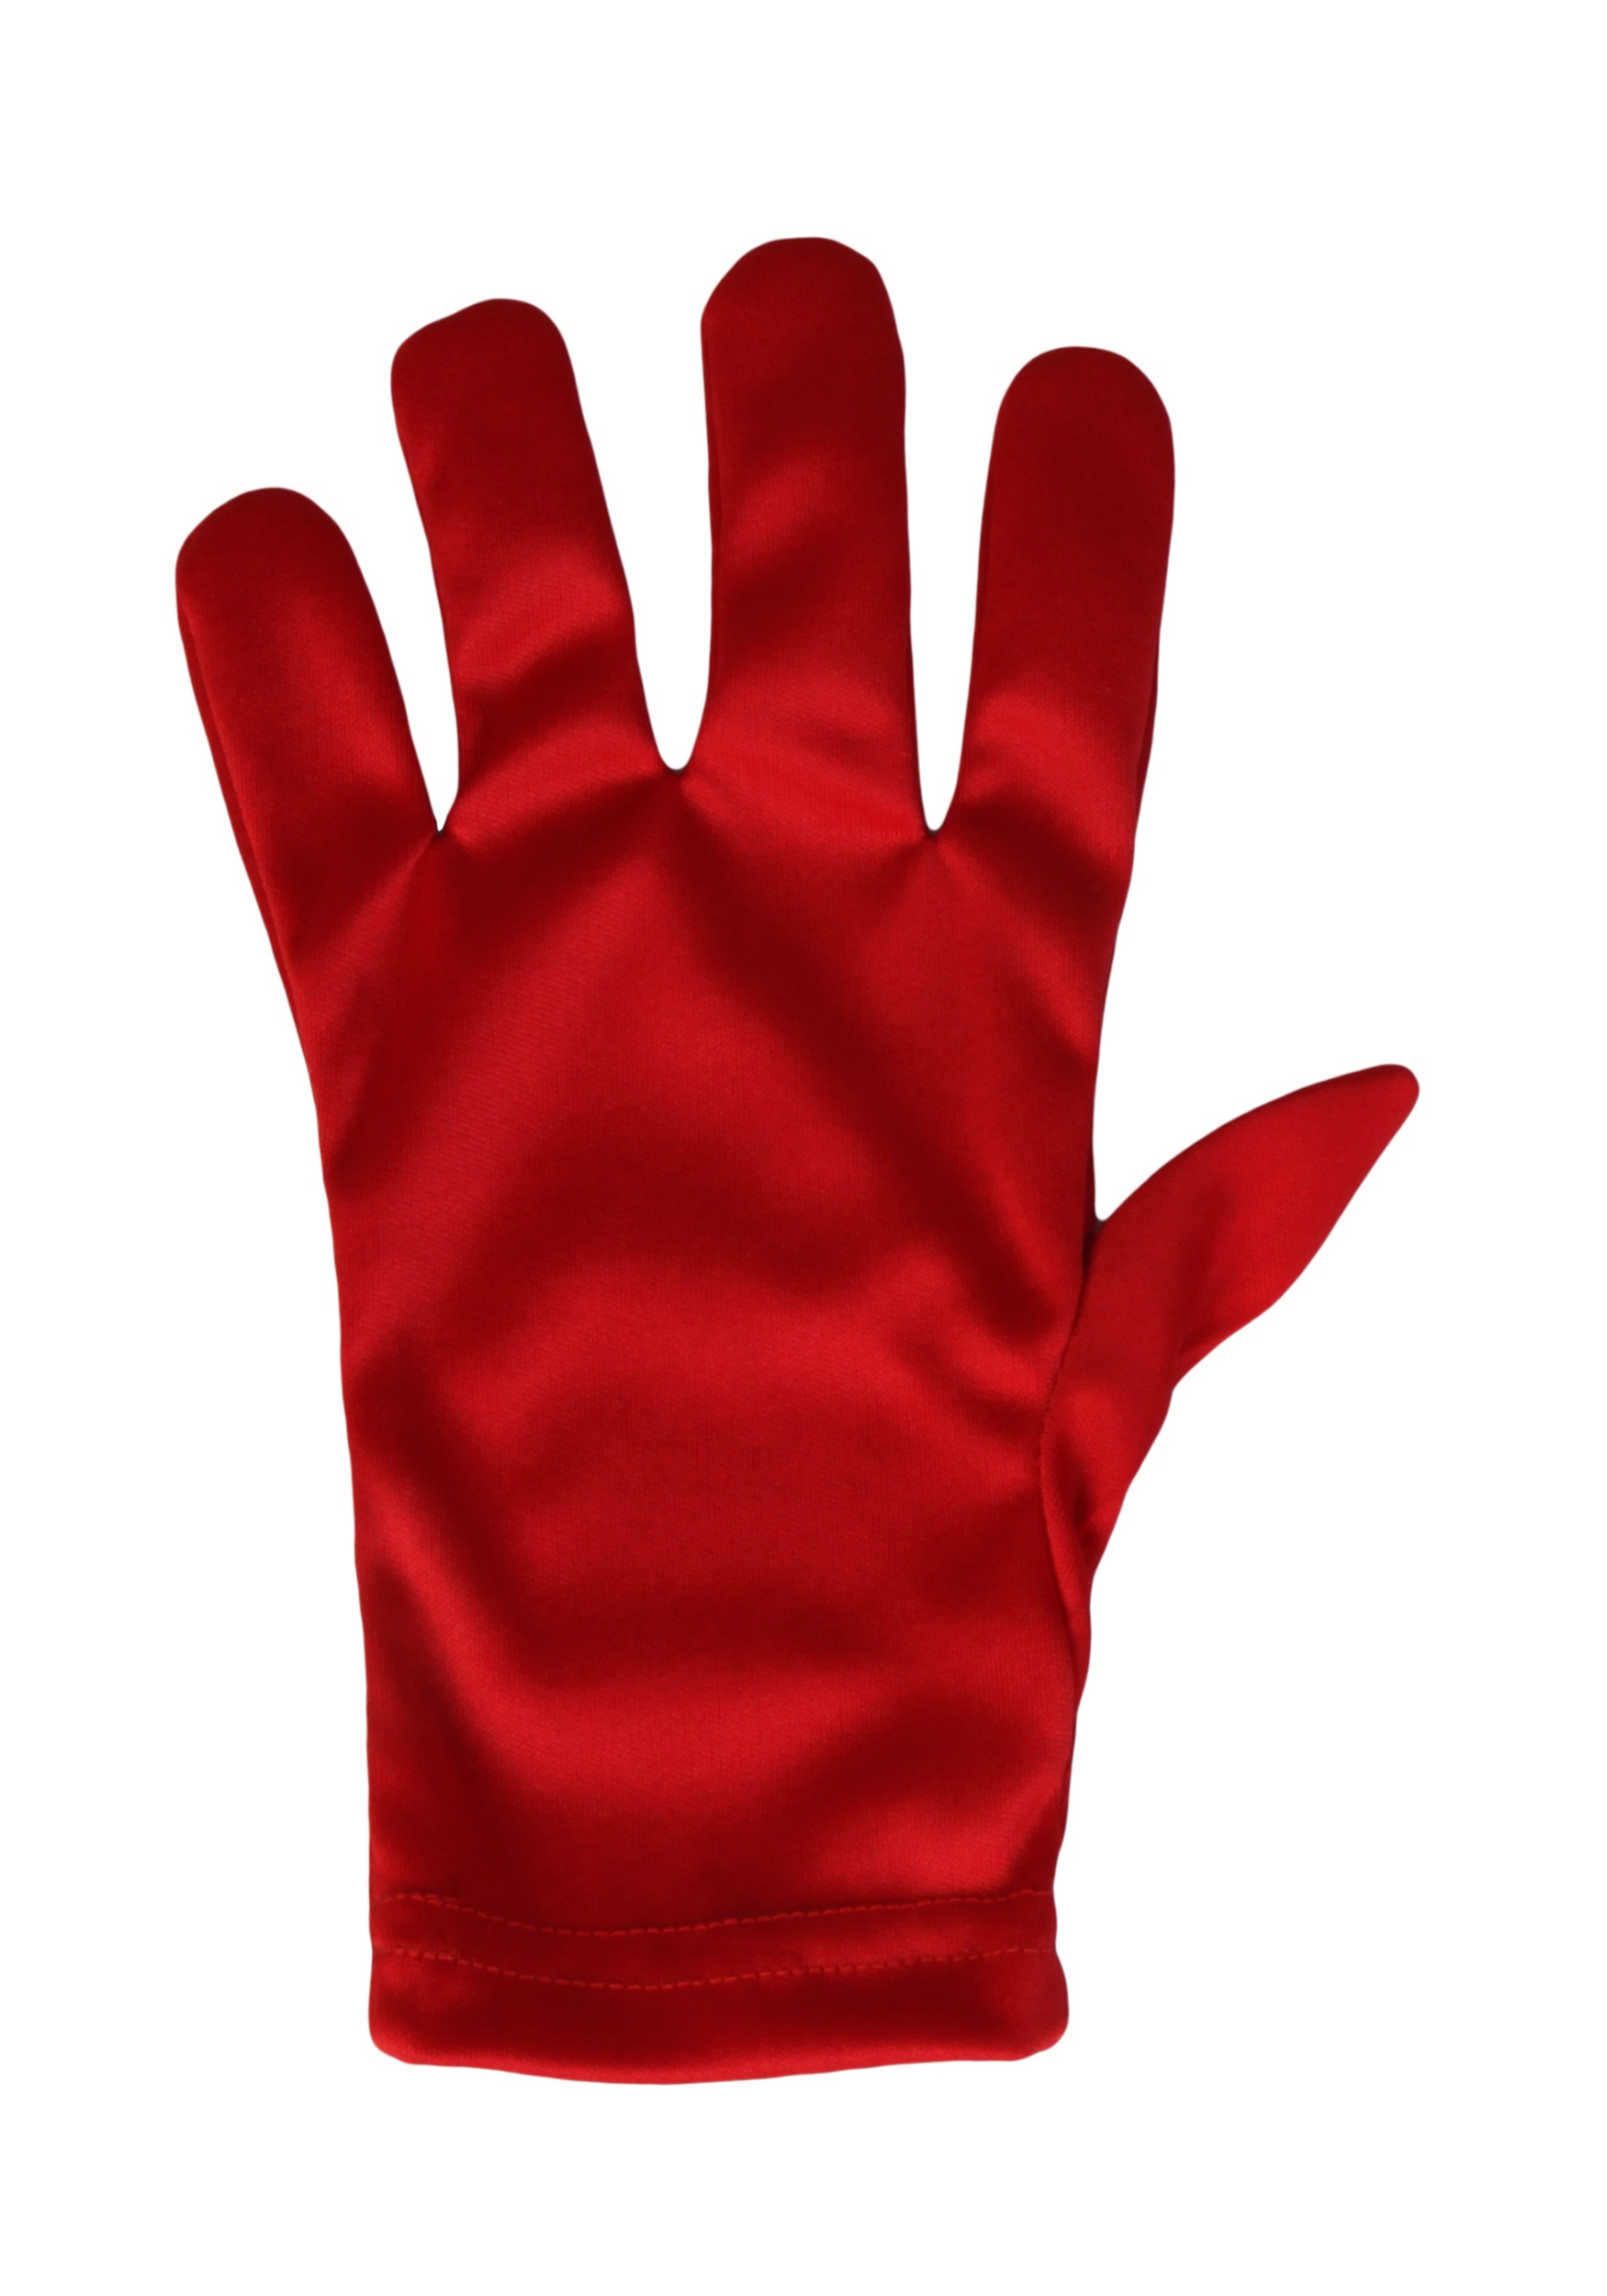 Stretchy Red Gloves